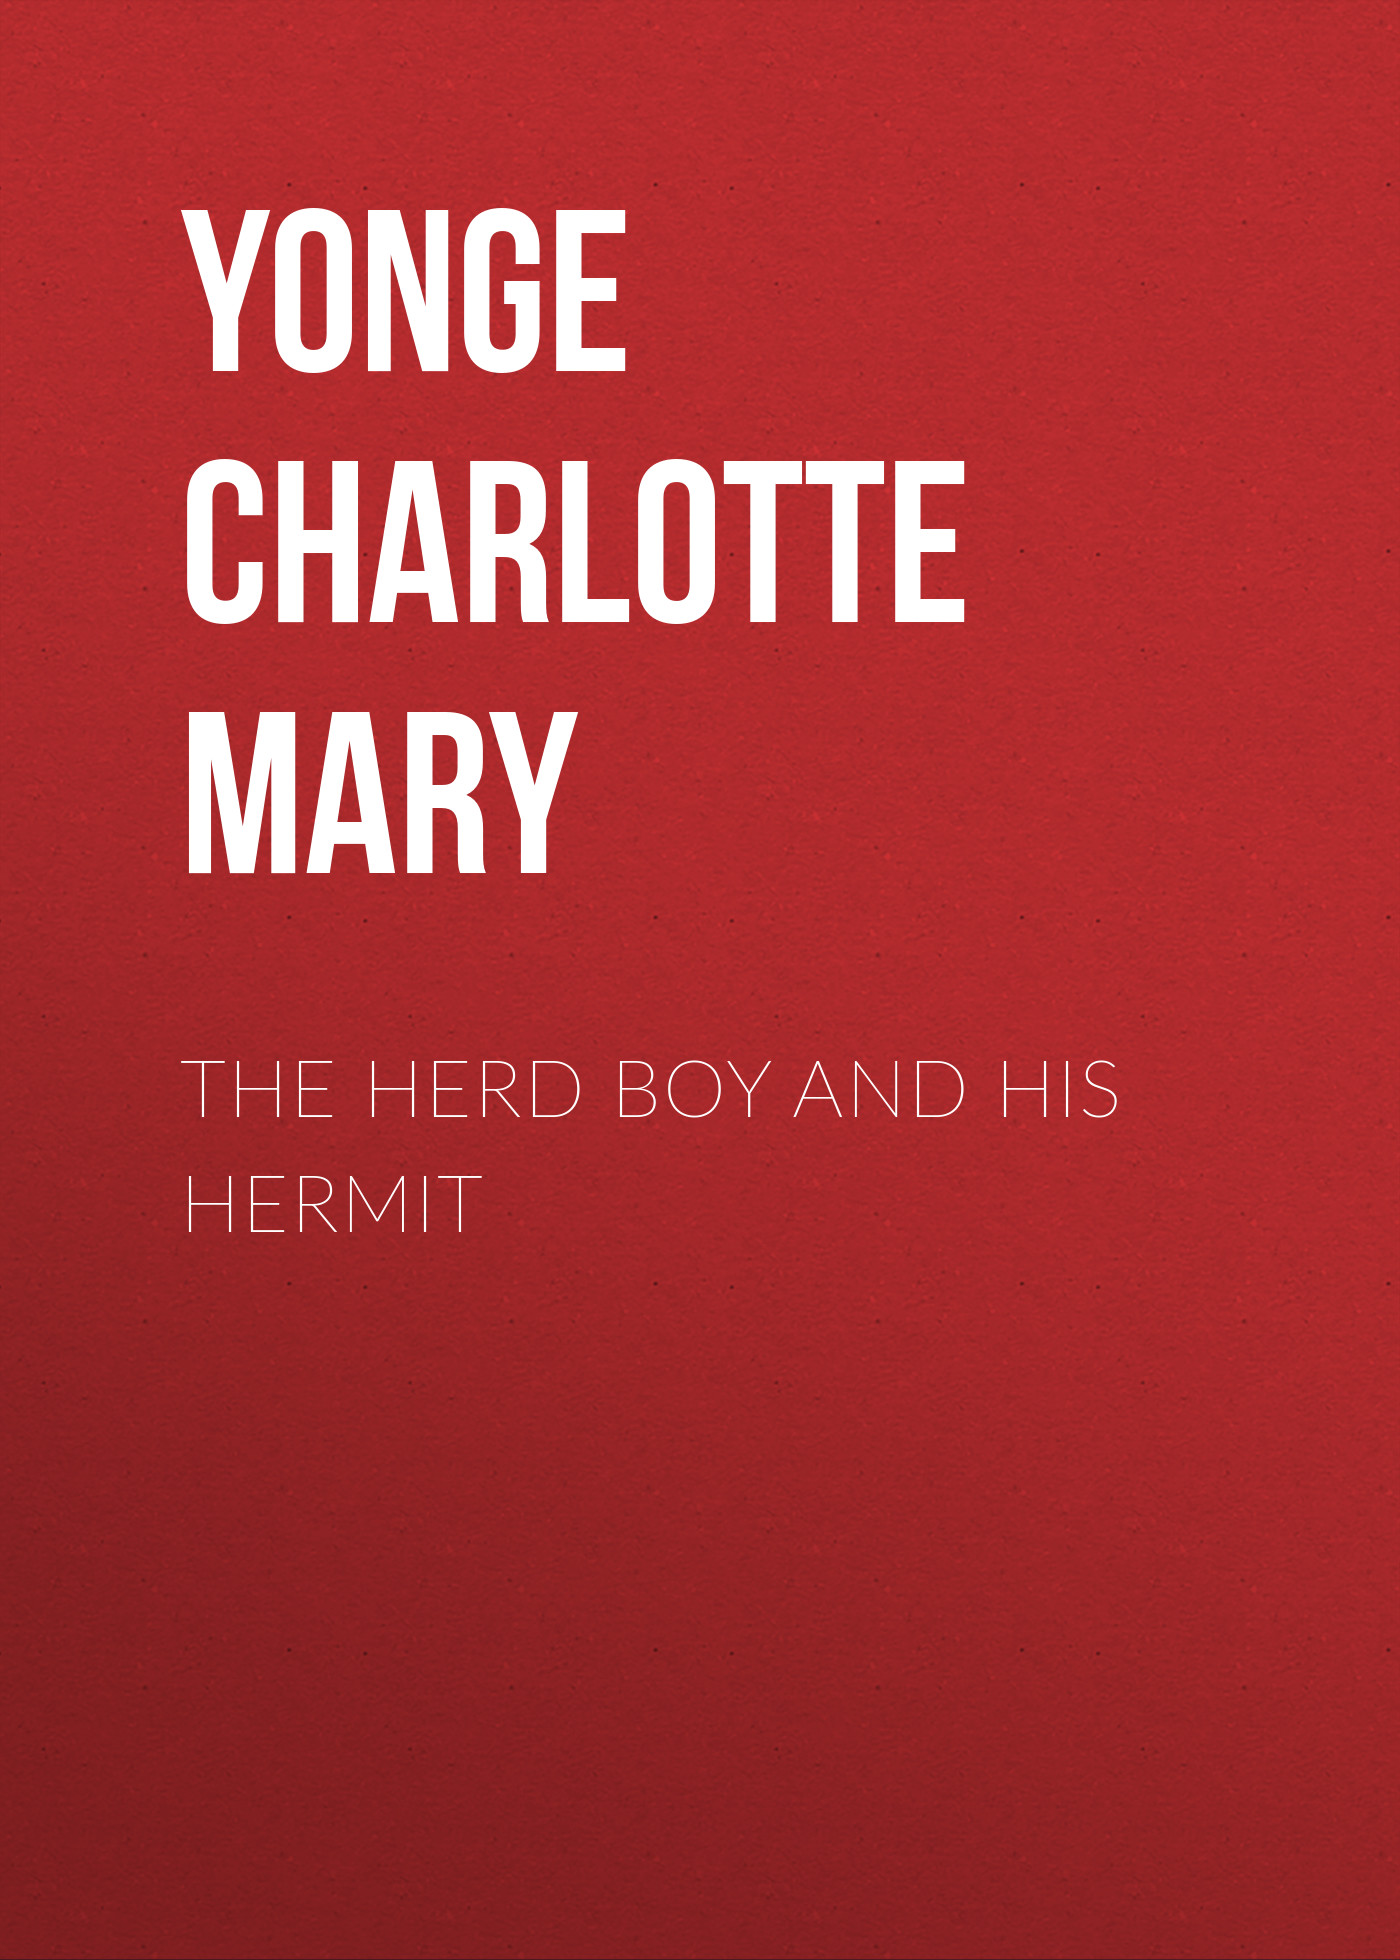 Yonge Charlotte Mary The Herd Boy and His Hermit канке виктор андреевич философия менеджмента учебник